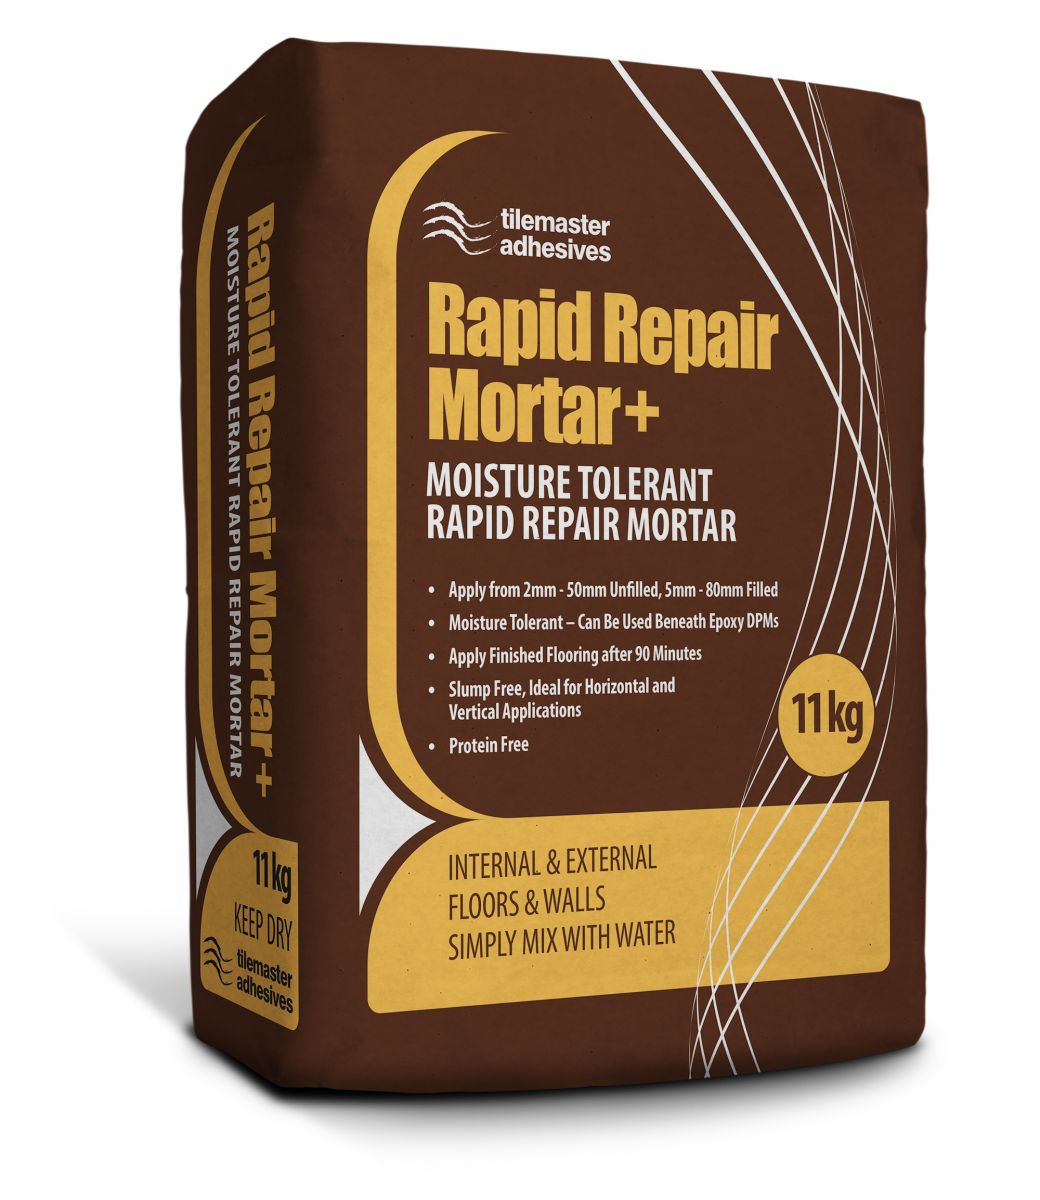 Rapid Repair Mortar+